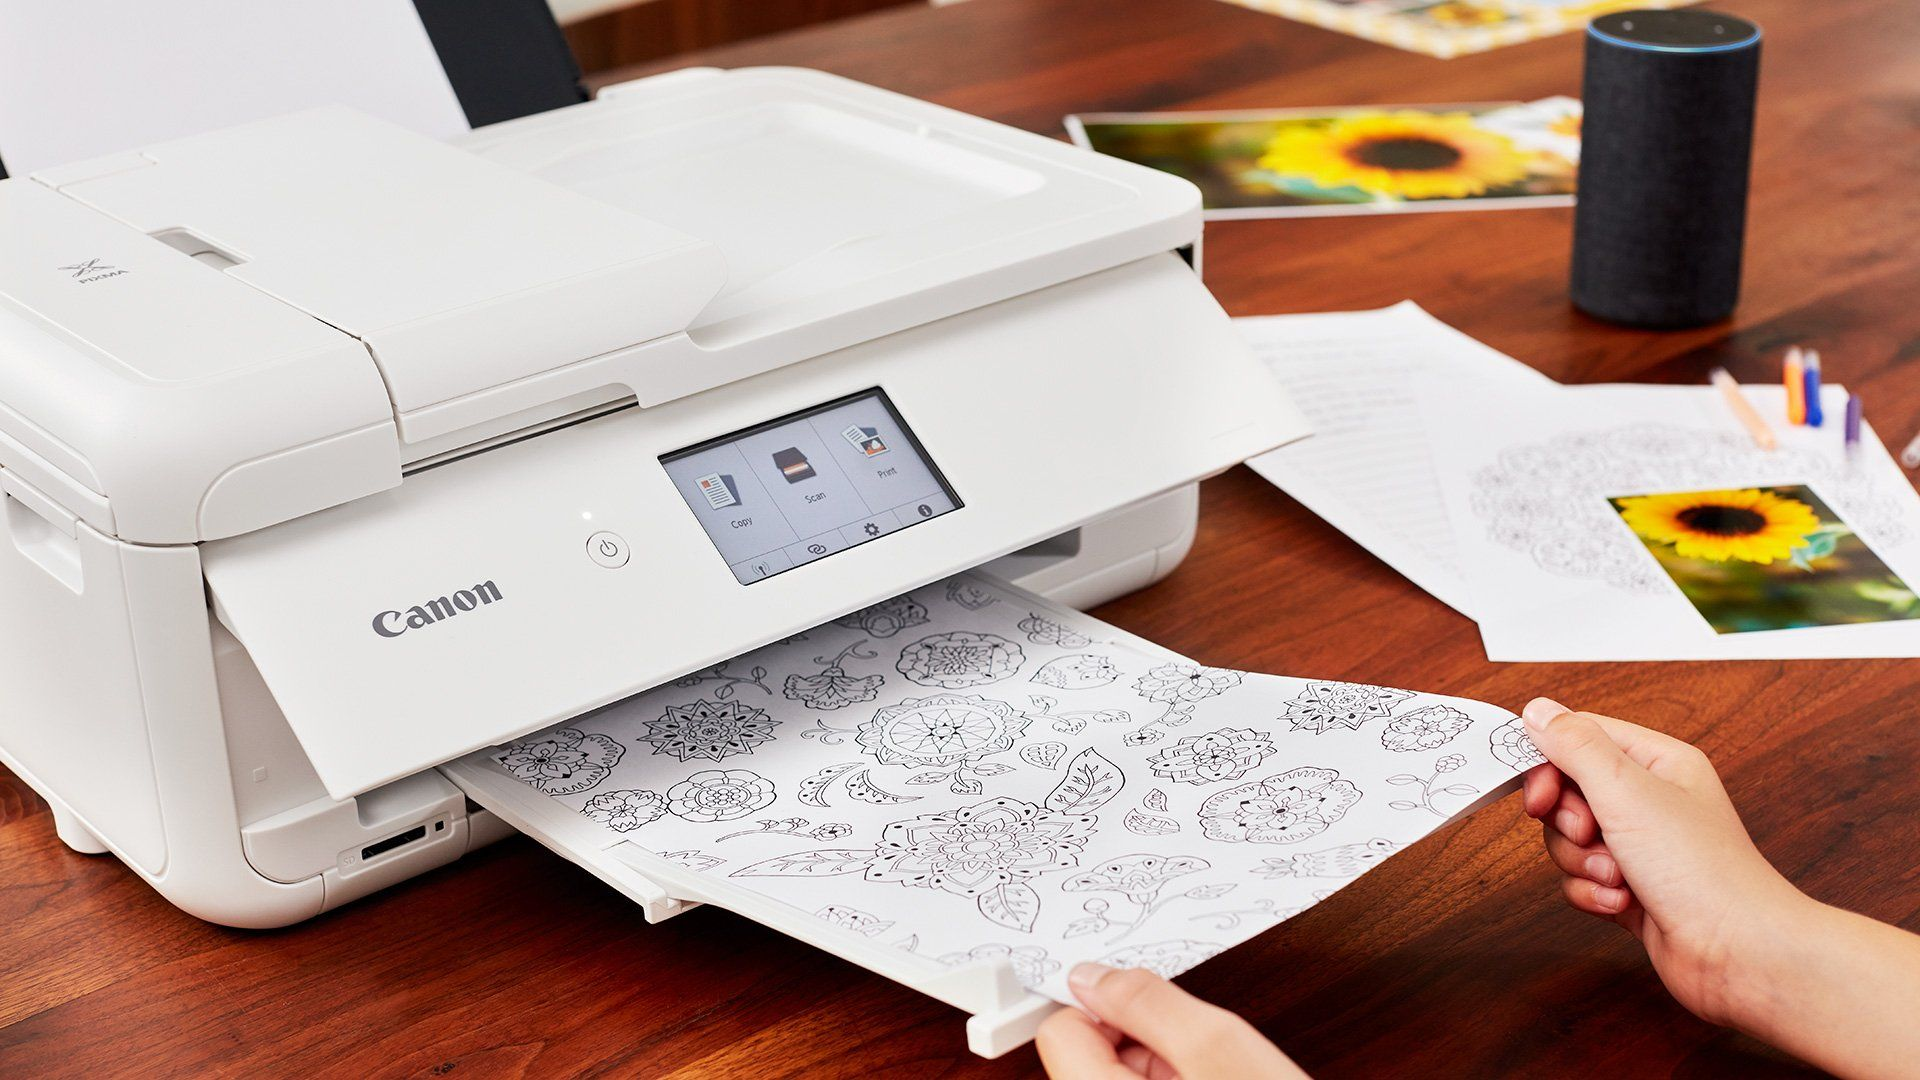 A sheet of colouring in images comes out of a white Canon PIXMA printer.